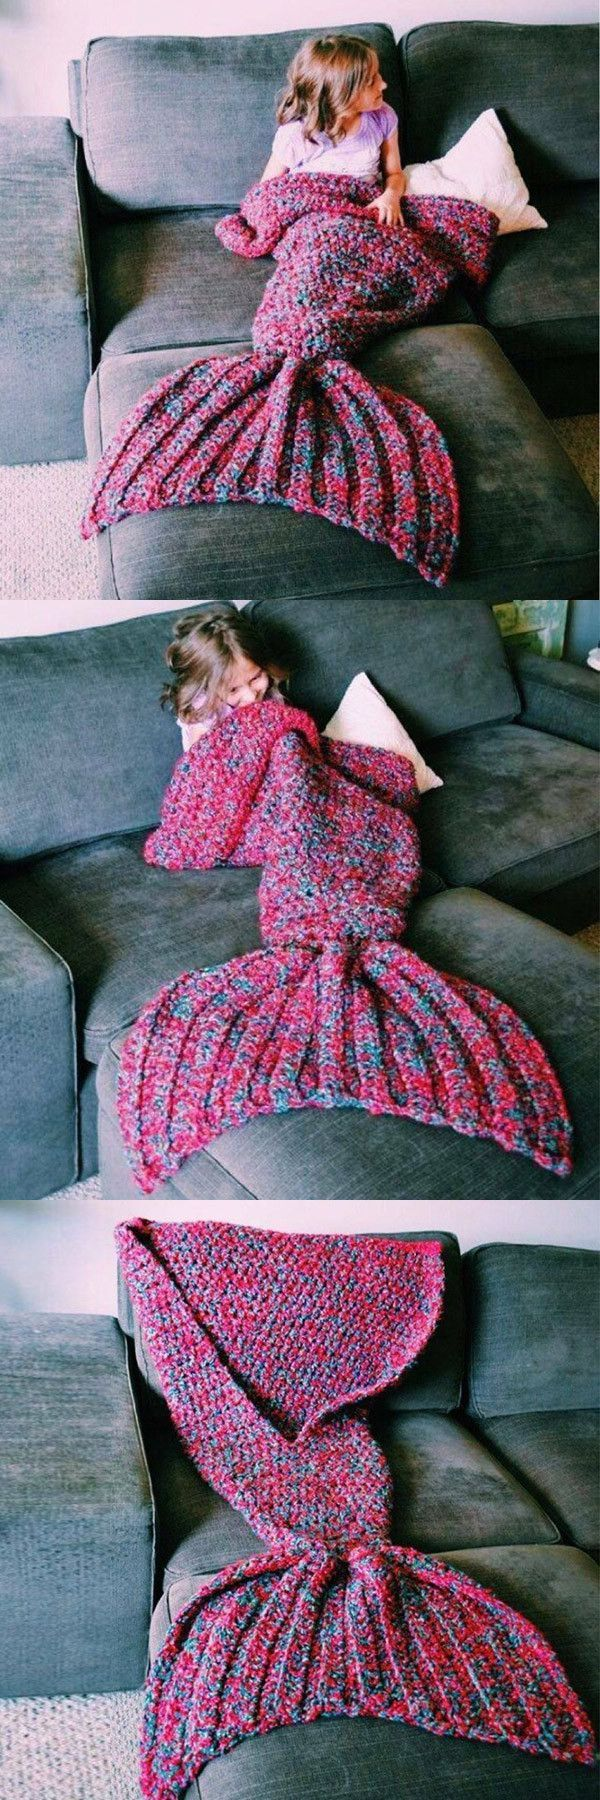 Artist Playfully Redesigns Cozy Blankets As Crocheted Mermaid Tails